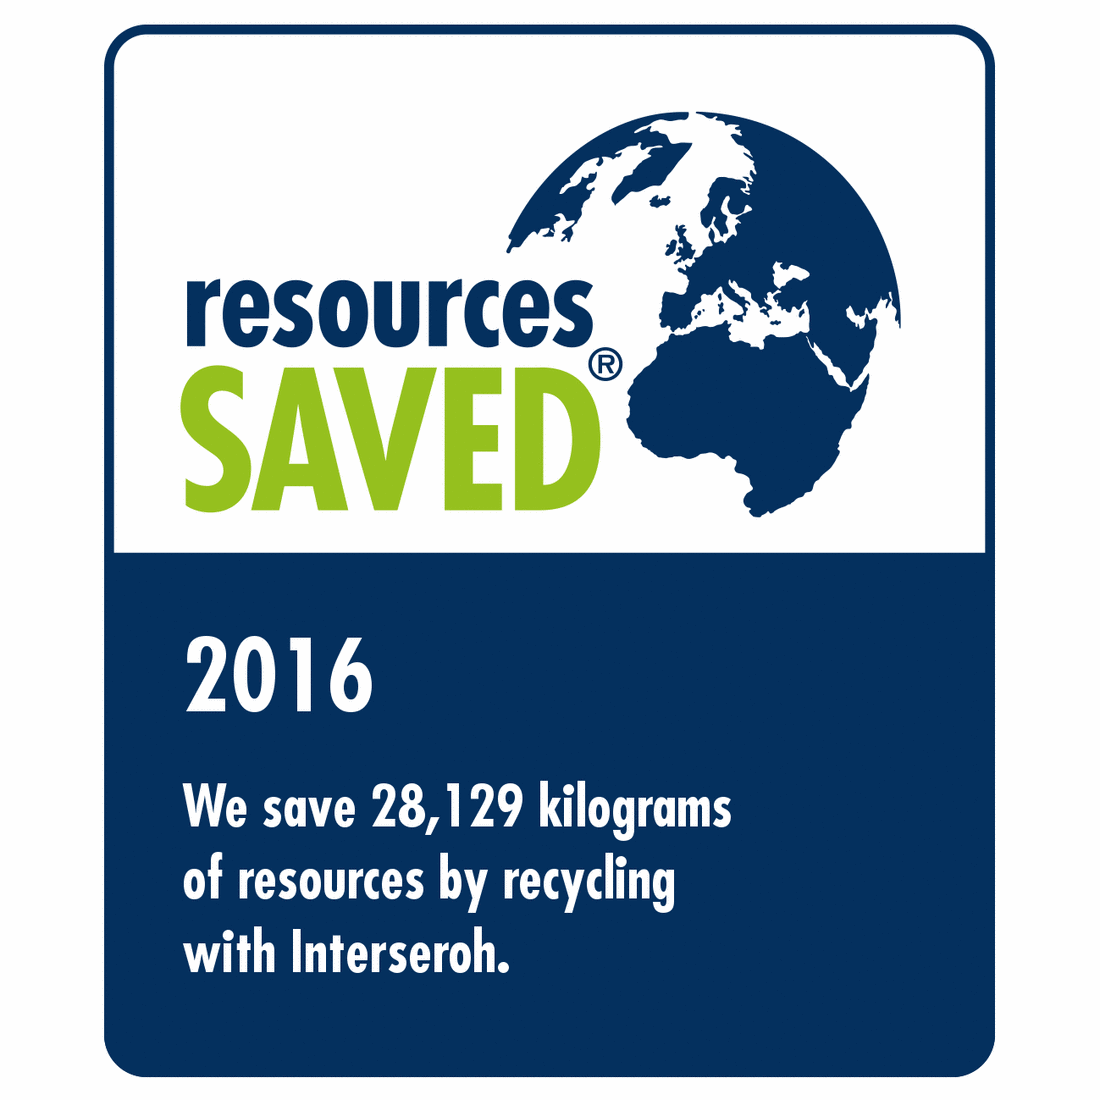 2016 - Saved resources by recycling